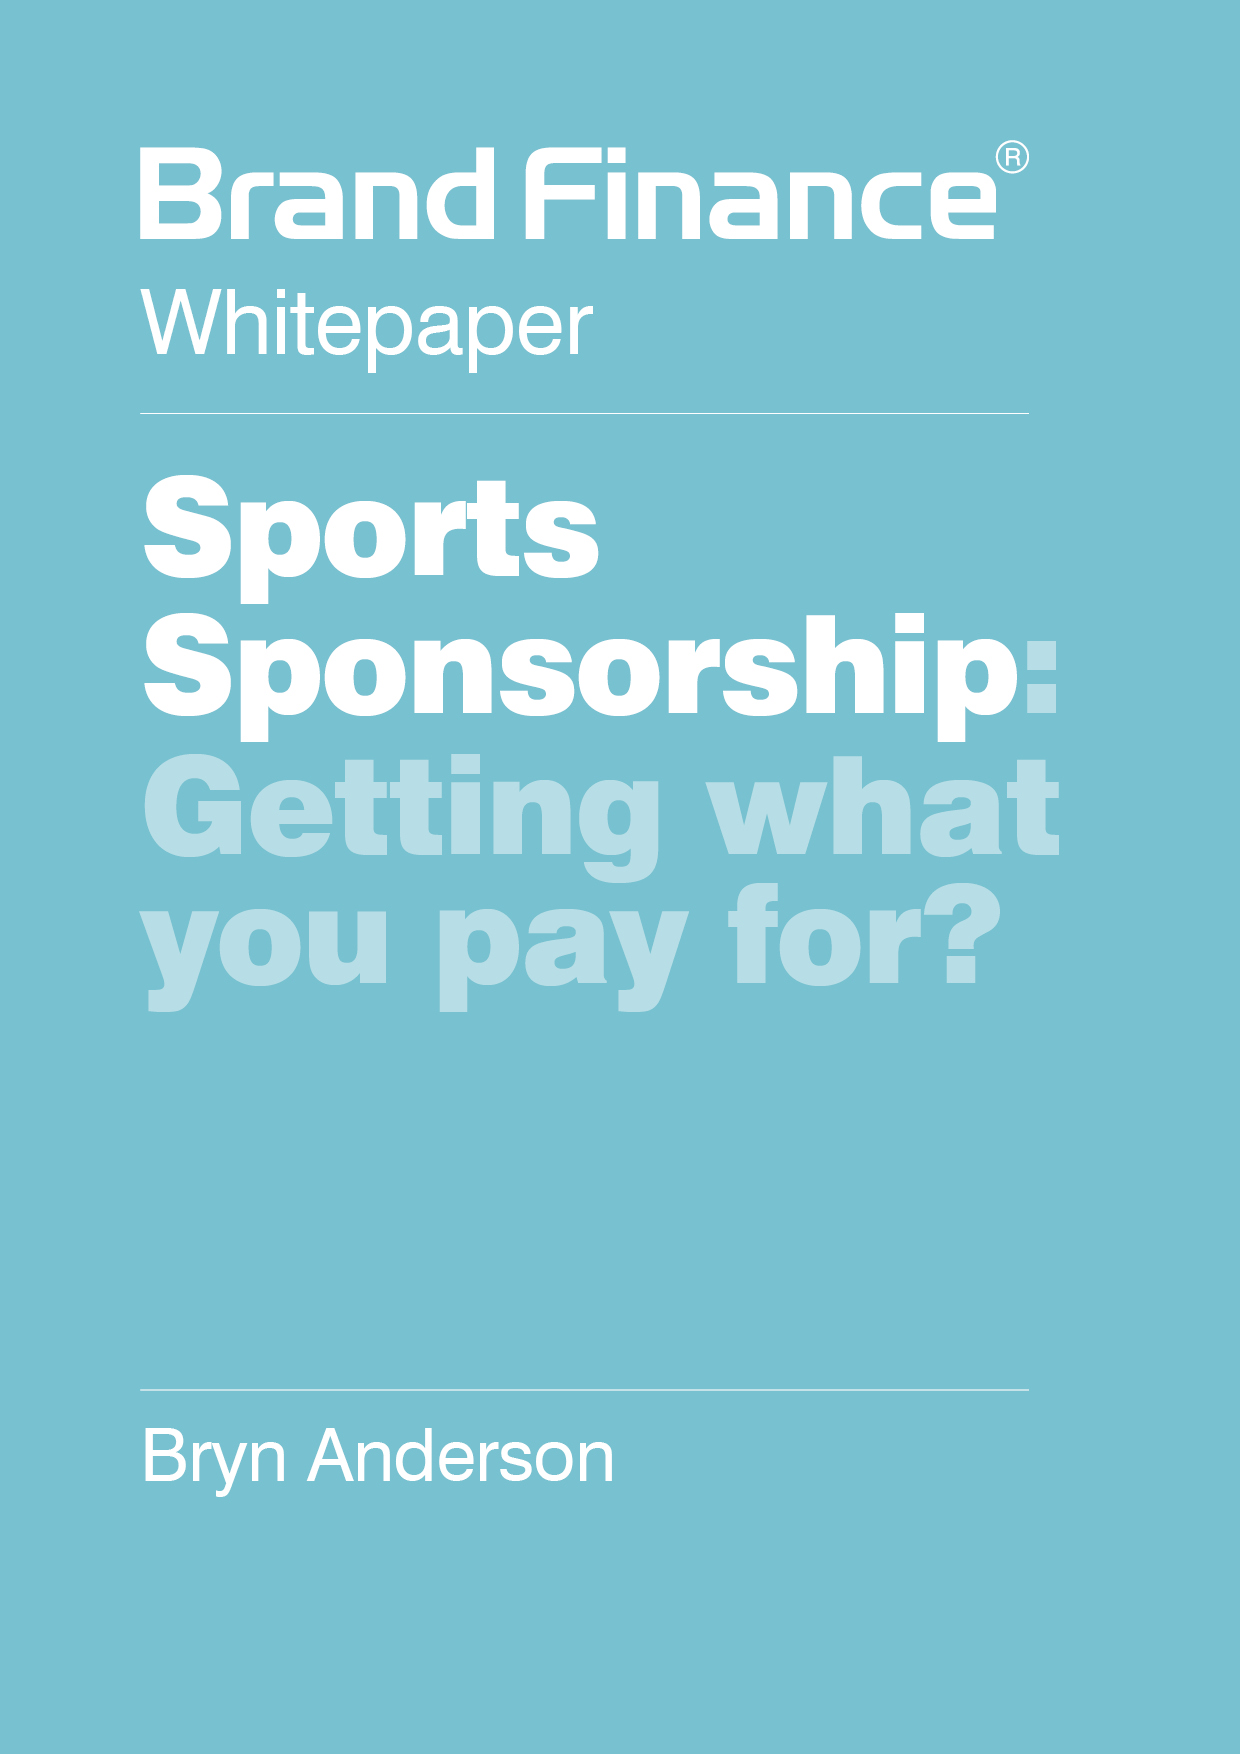 Sports Sponsorship: Getting what  you pay for?